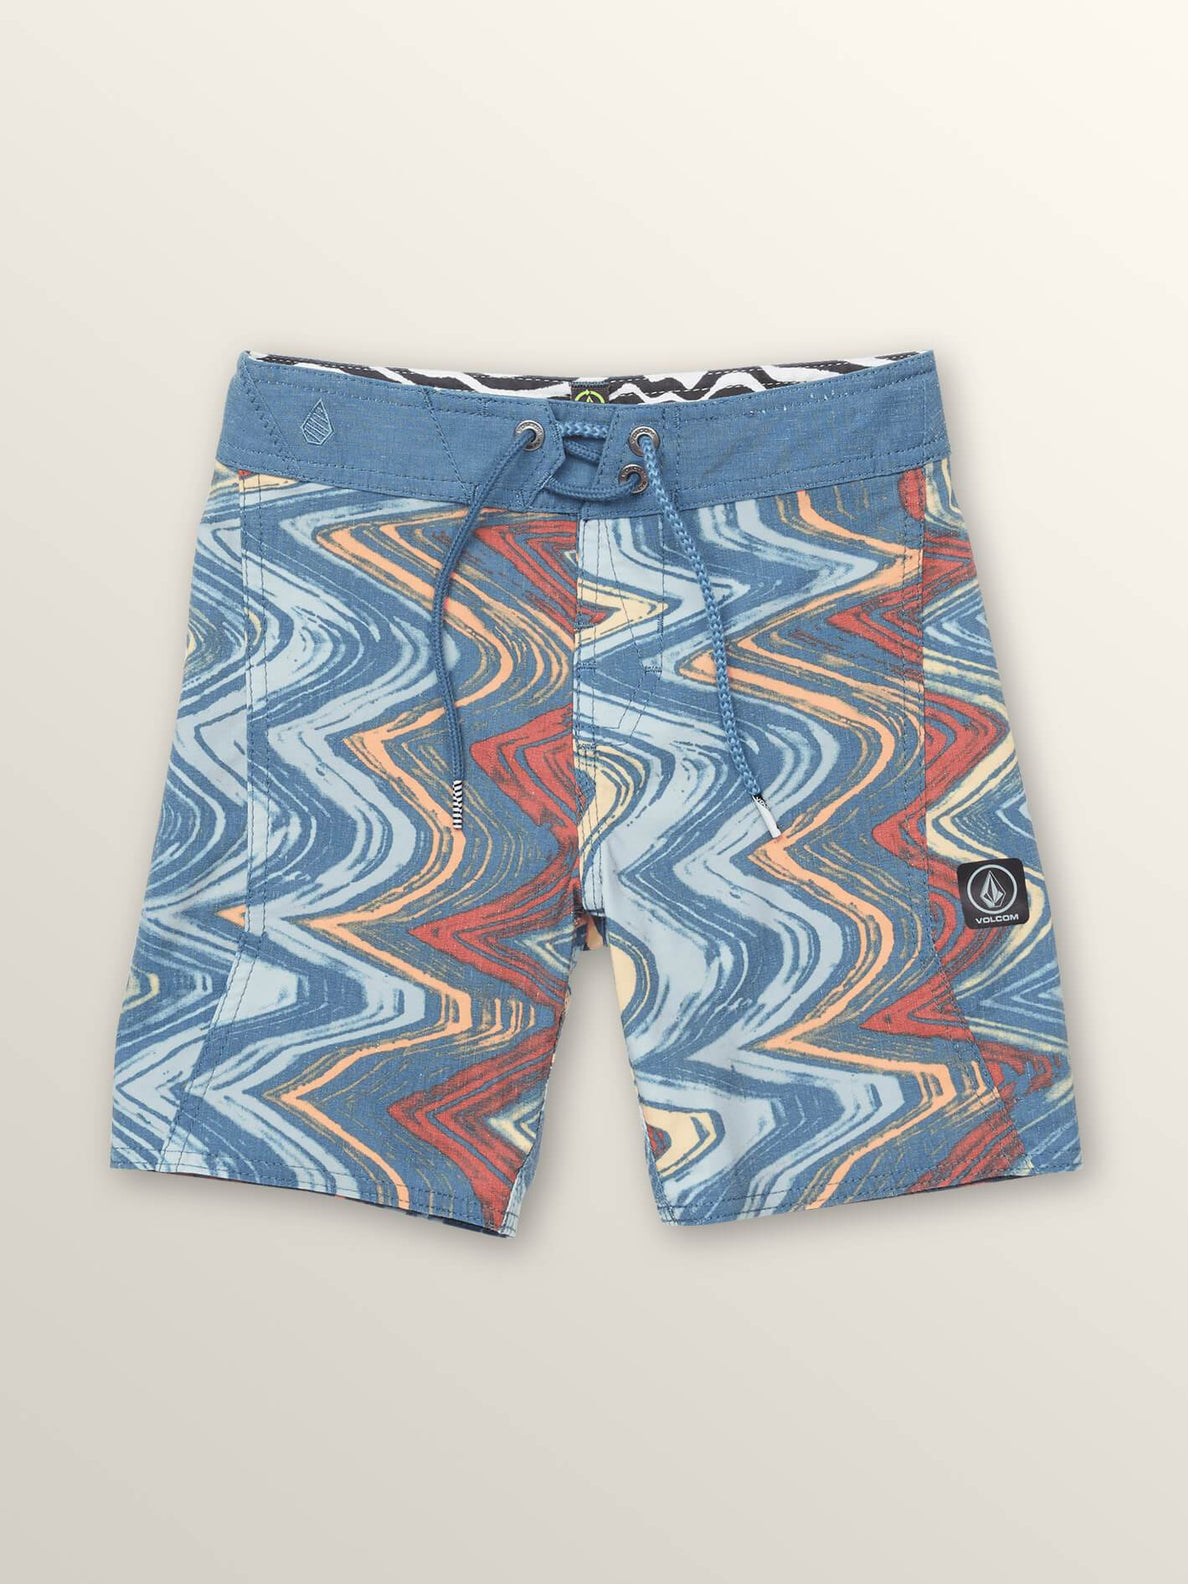 Little Boys Lo Fi Boardshorts In Sunburst, Front View